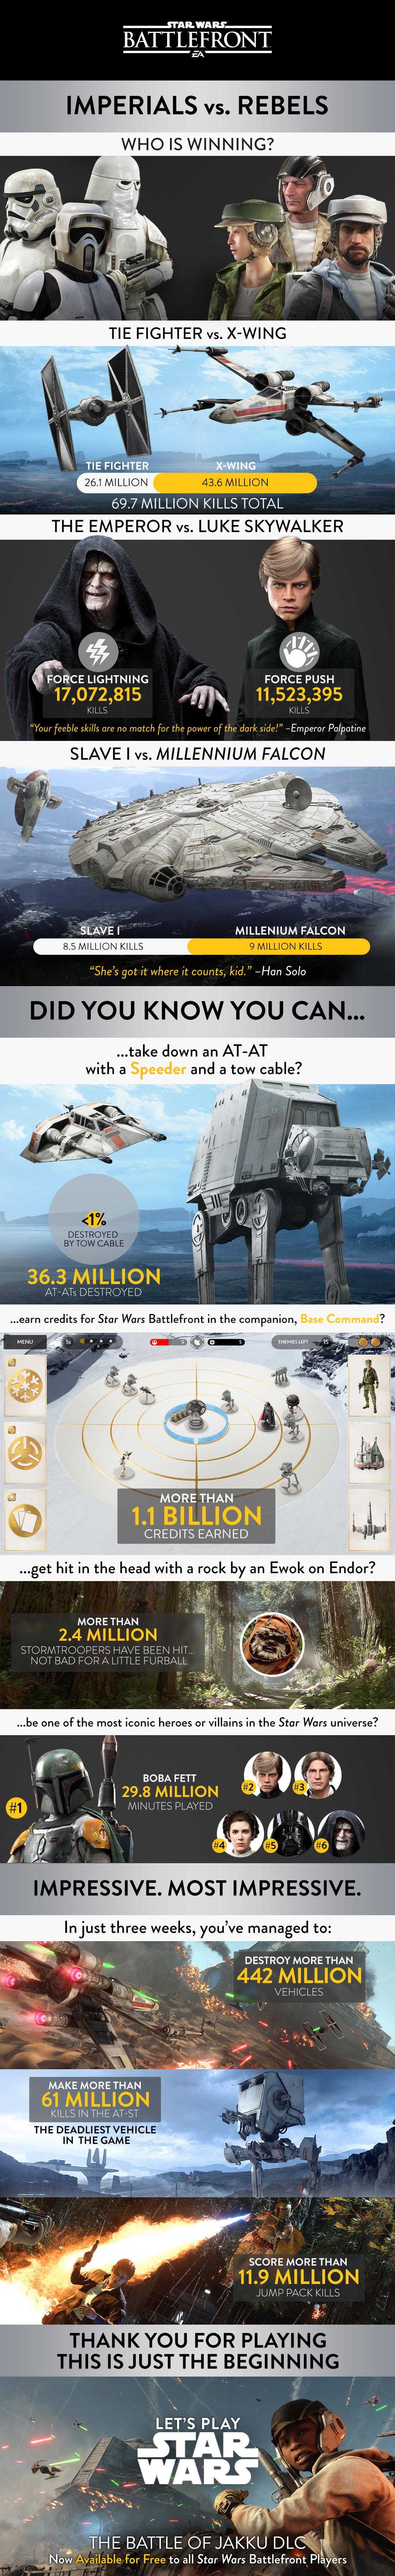 star_wars_battlefront_launch_infographic